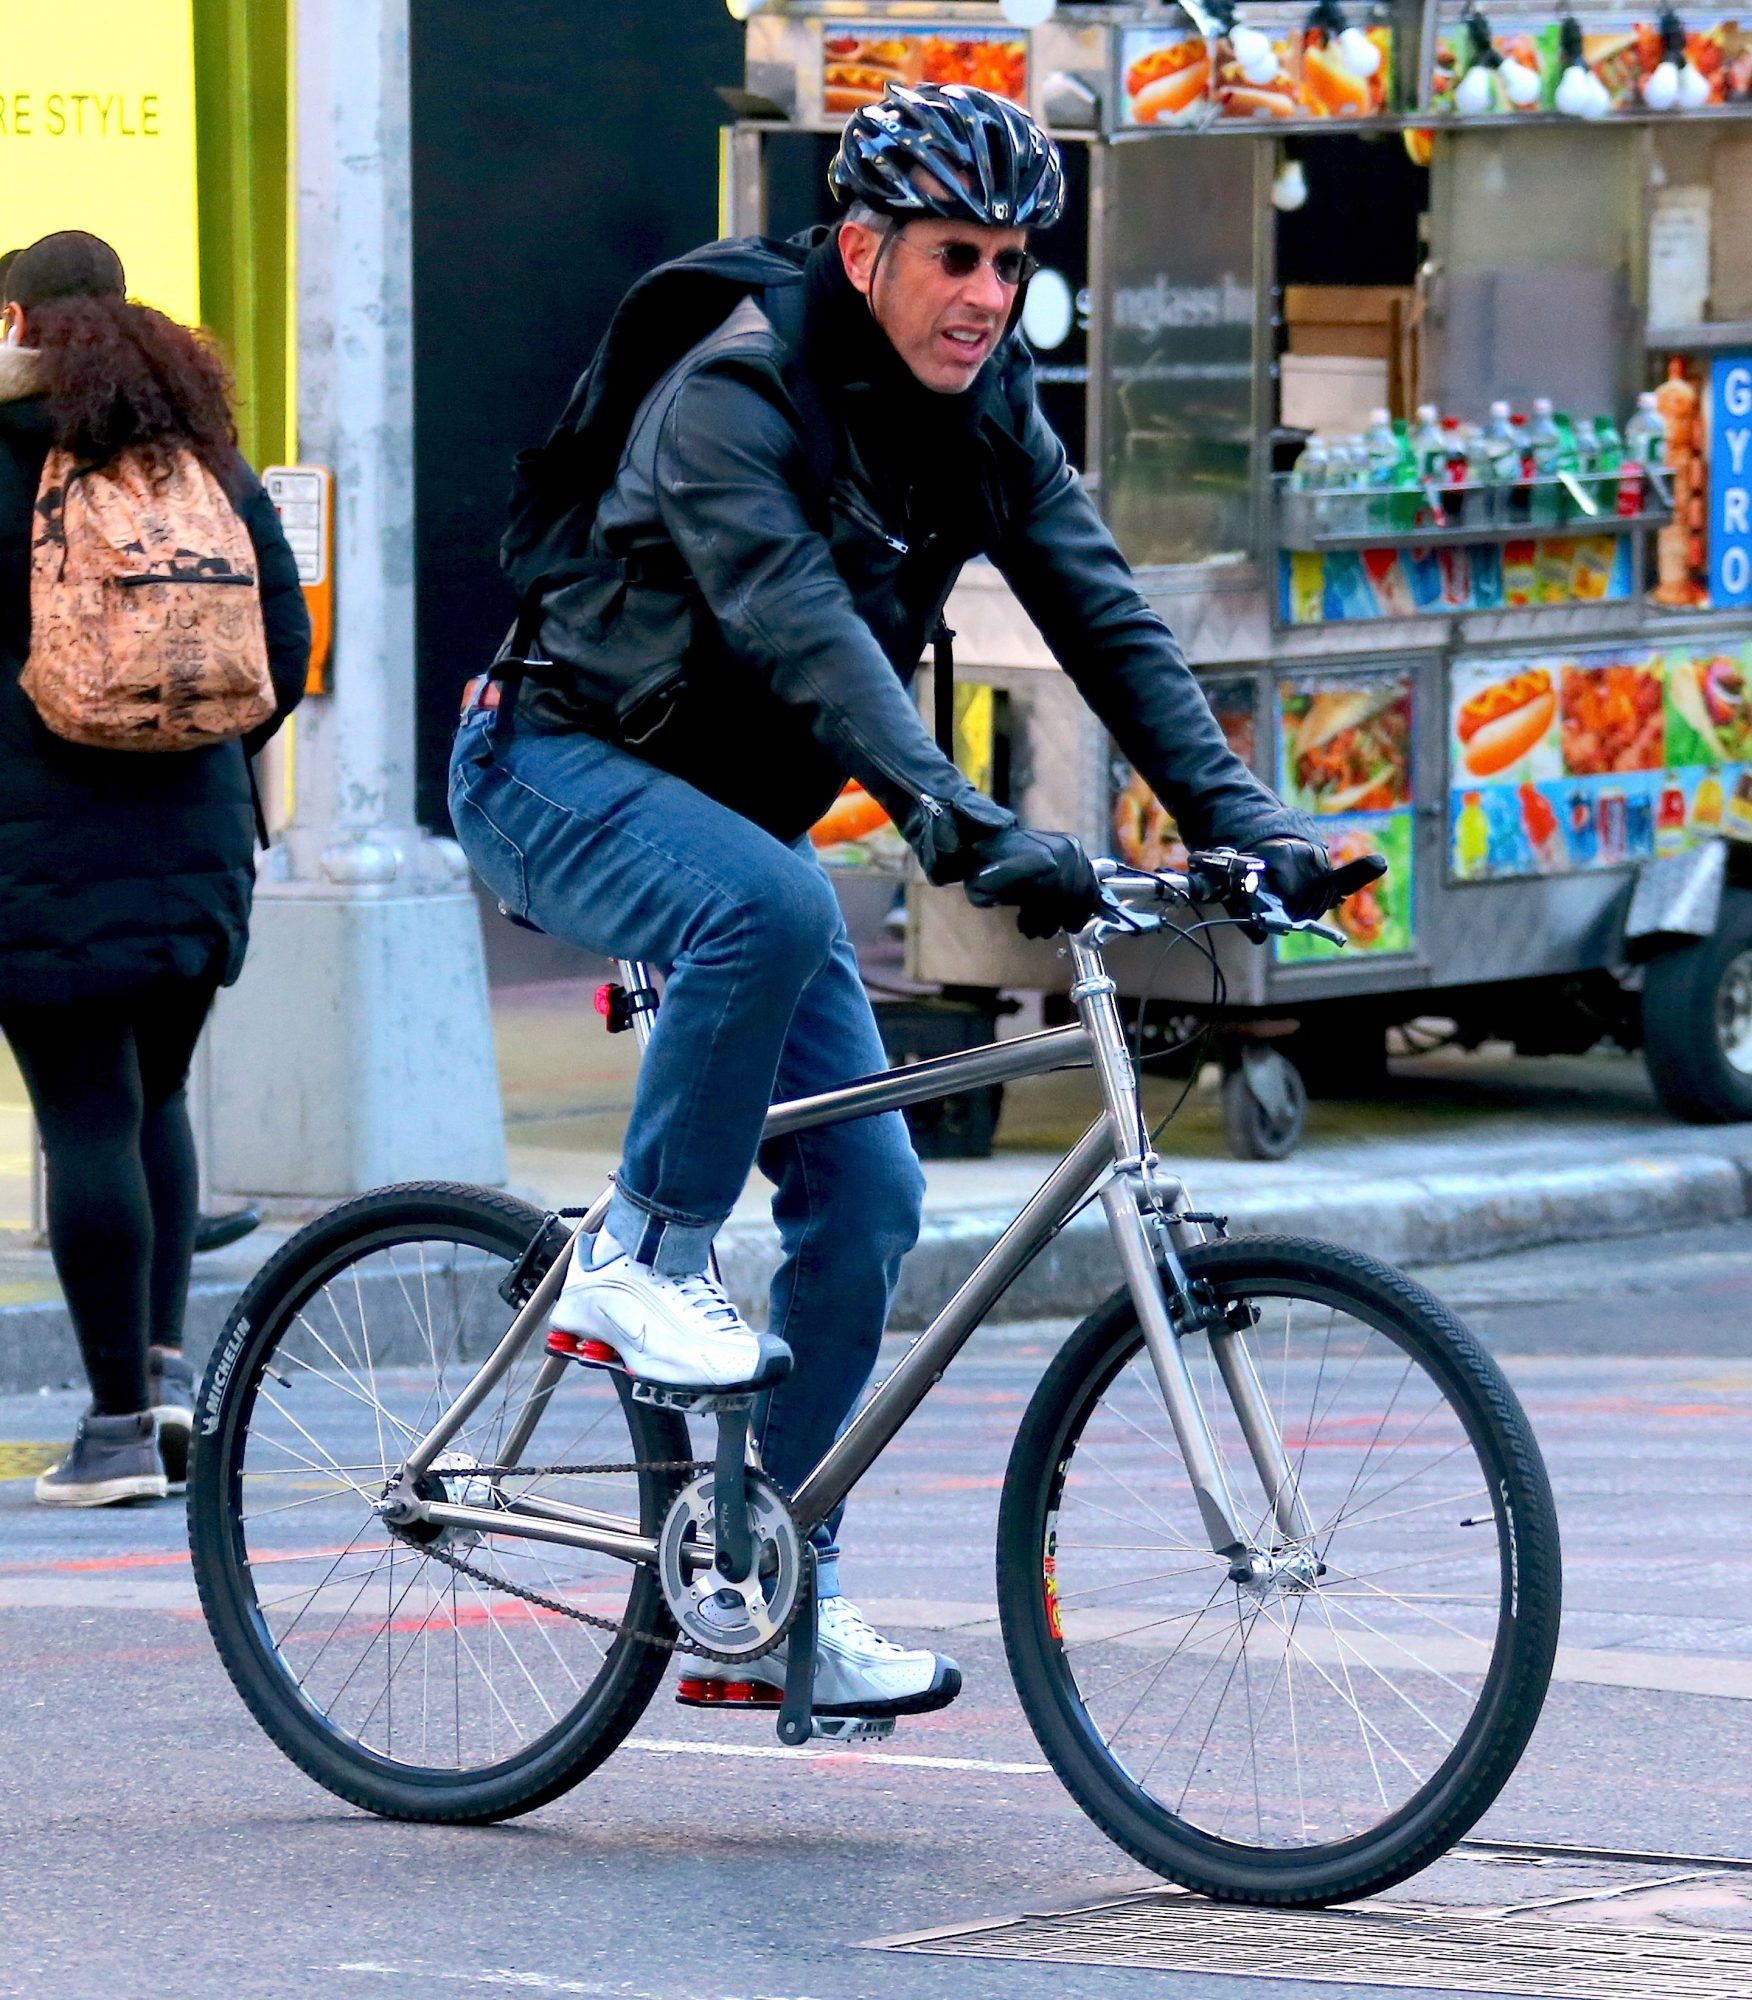 Jerry Seinfeld rides a bicycle in the streets of New York